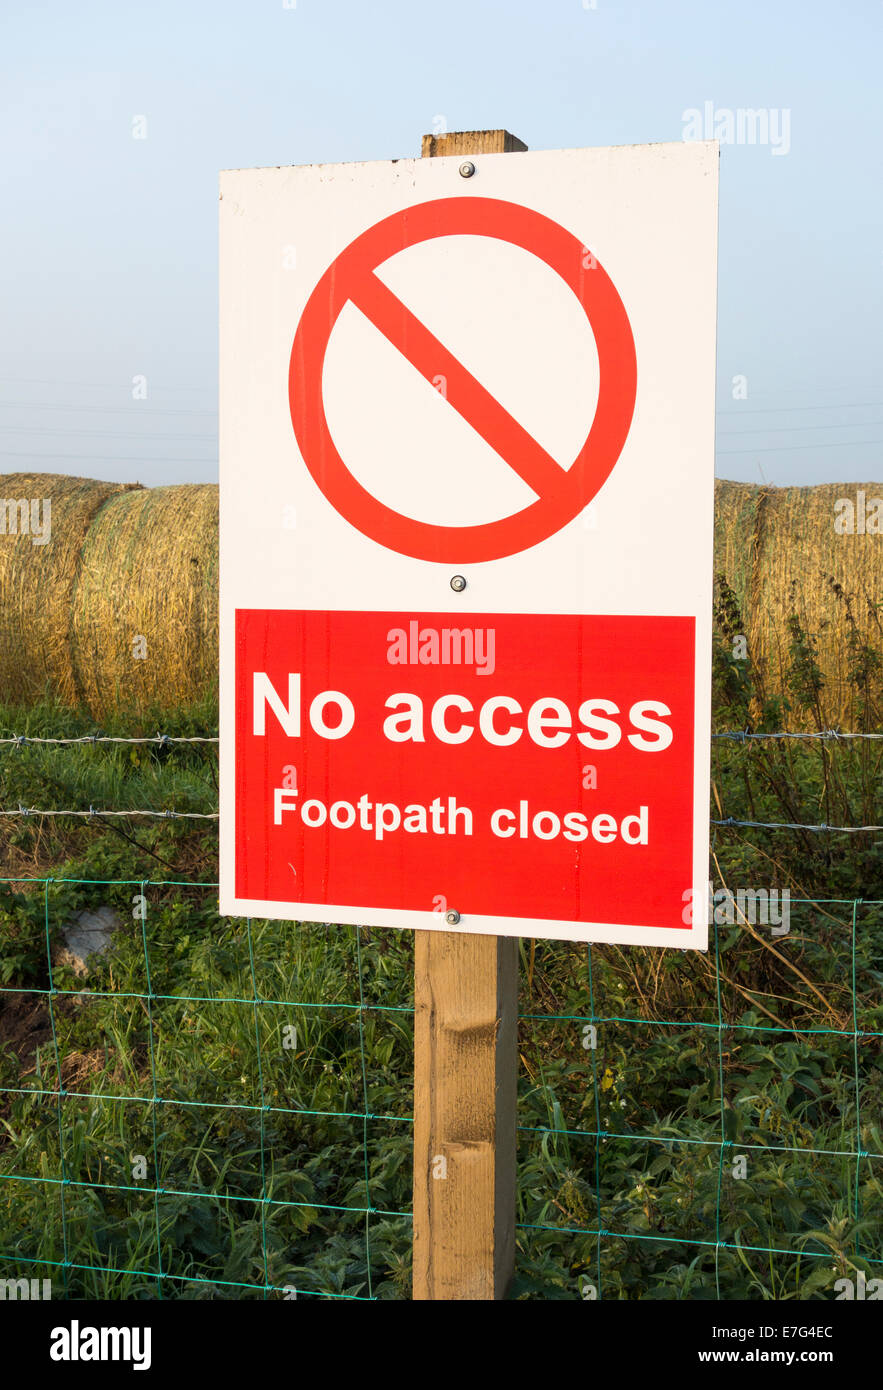 No access footpath closed sign near farm. England, UK - Stock Image